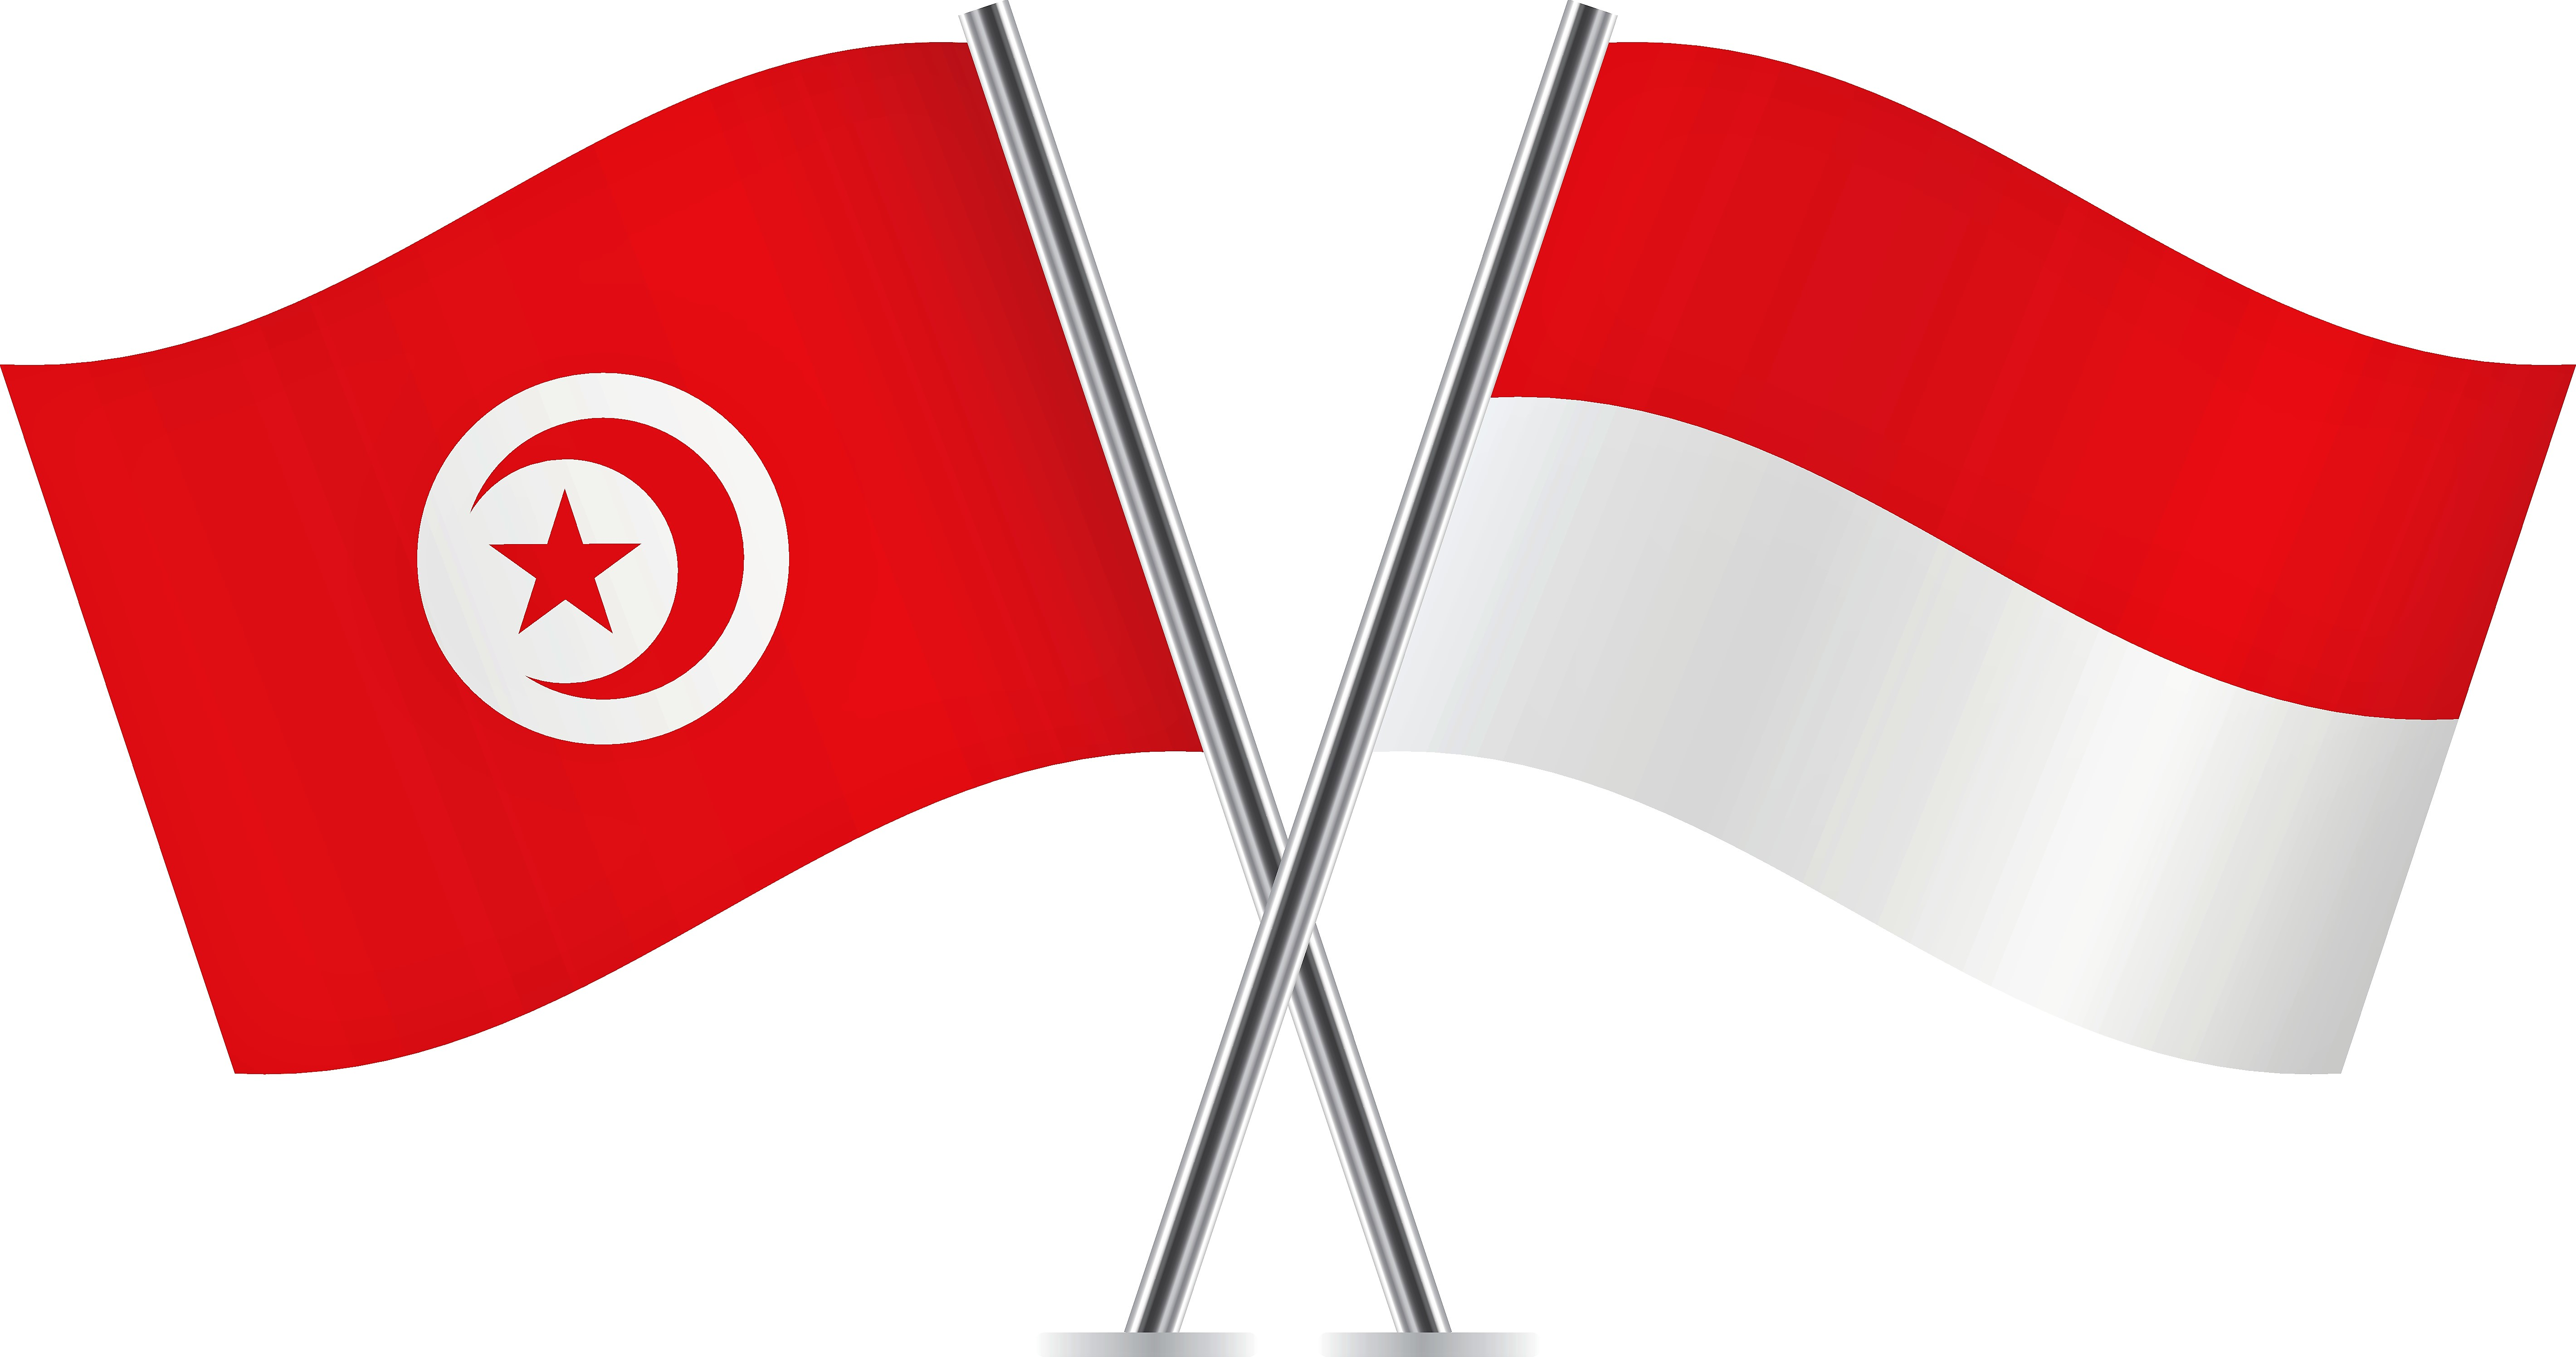 Indonesia and Tunisia: Democracy as a Distinctive Link